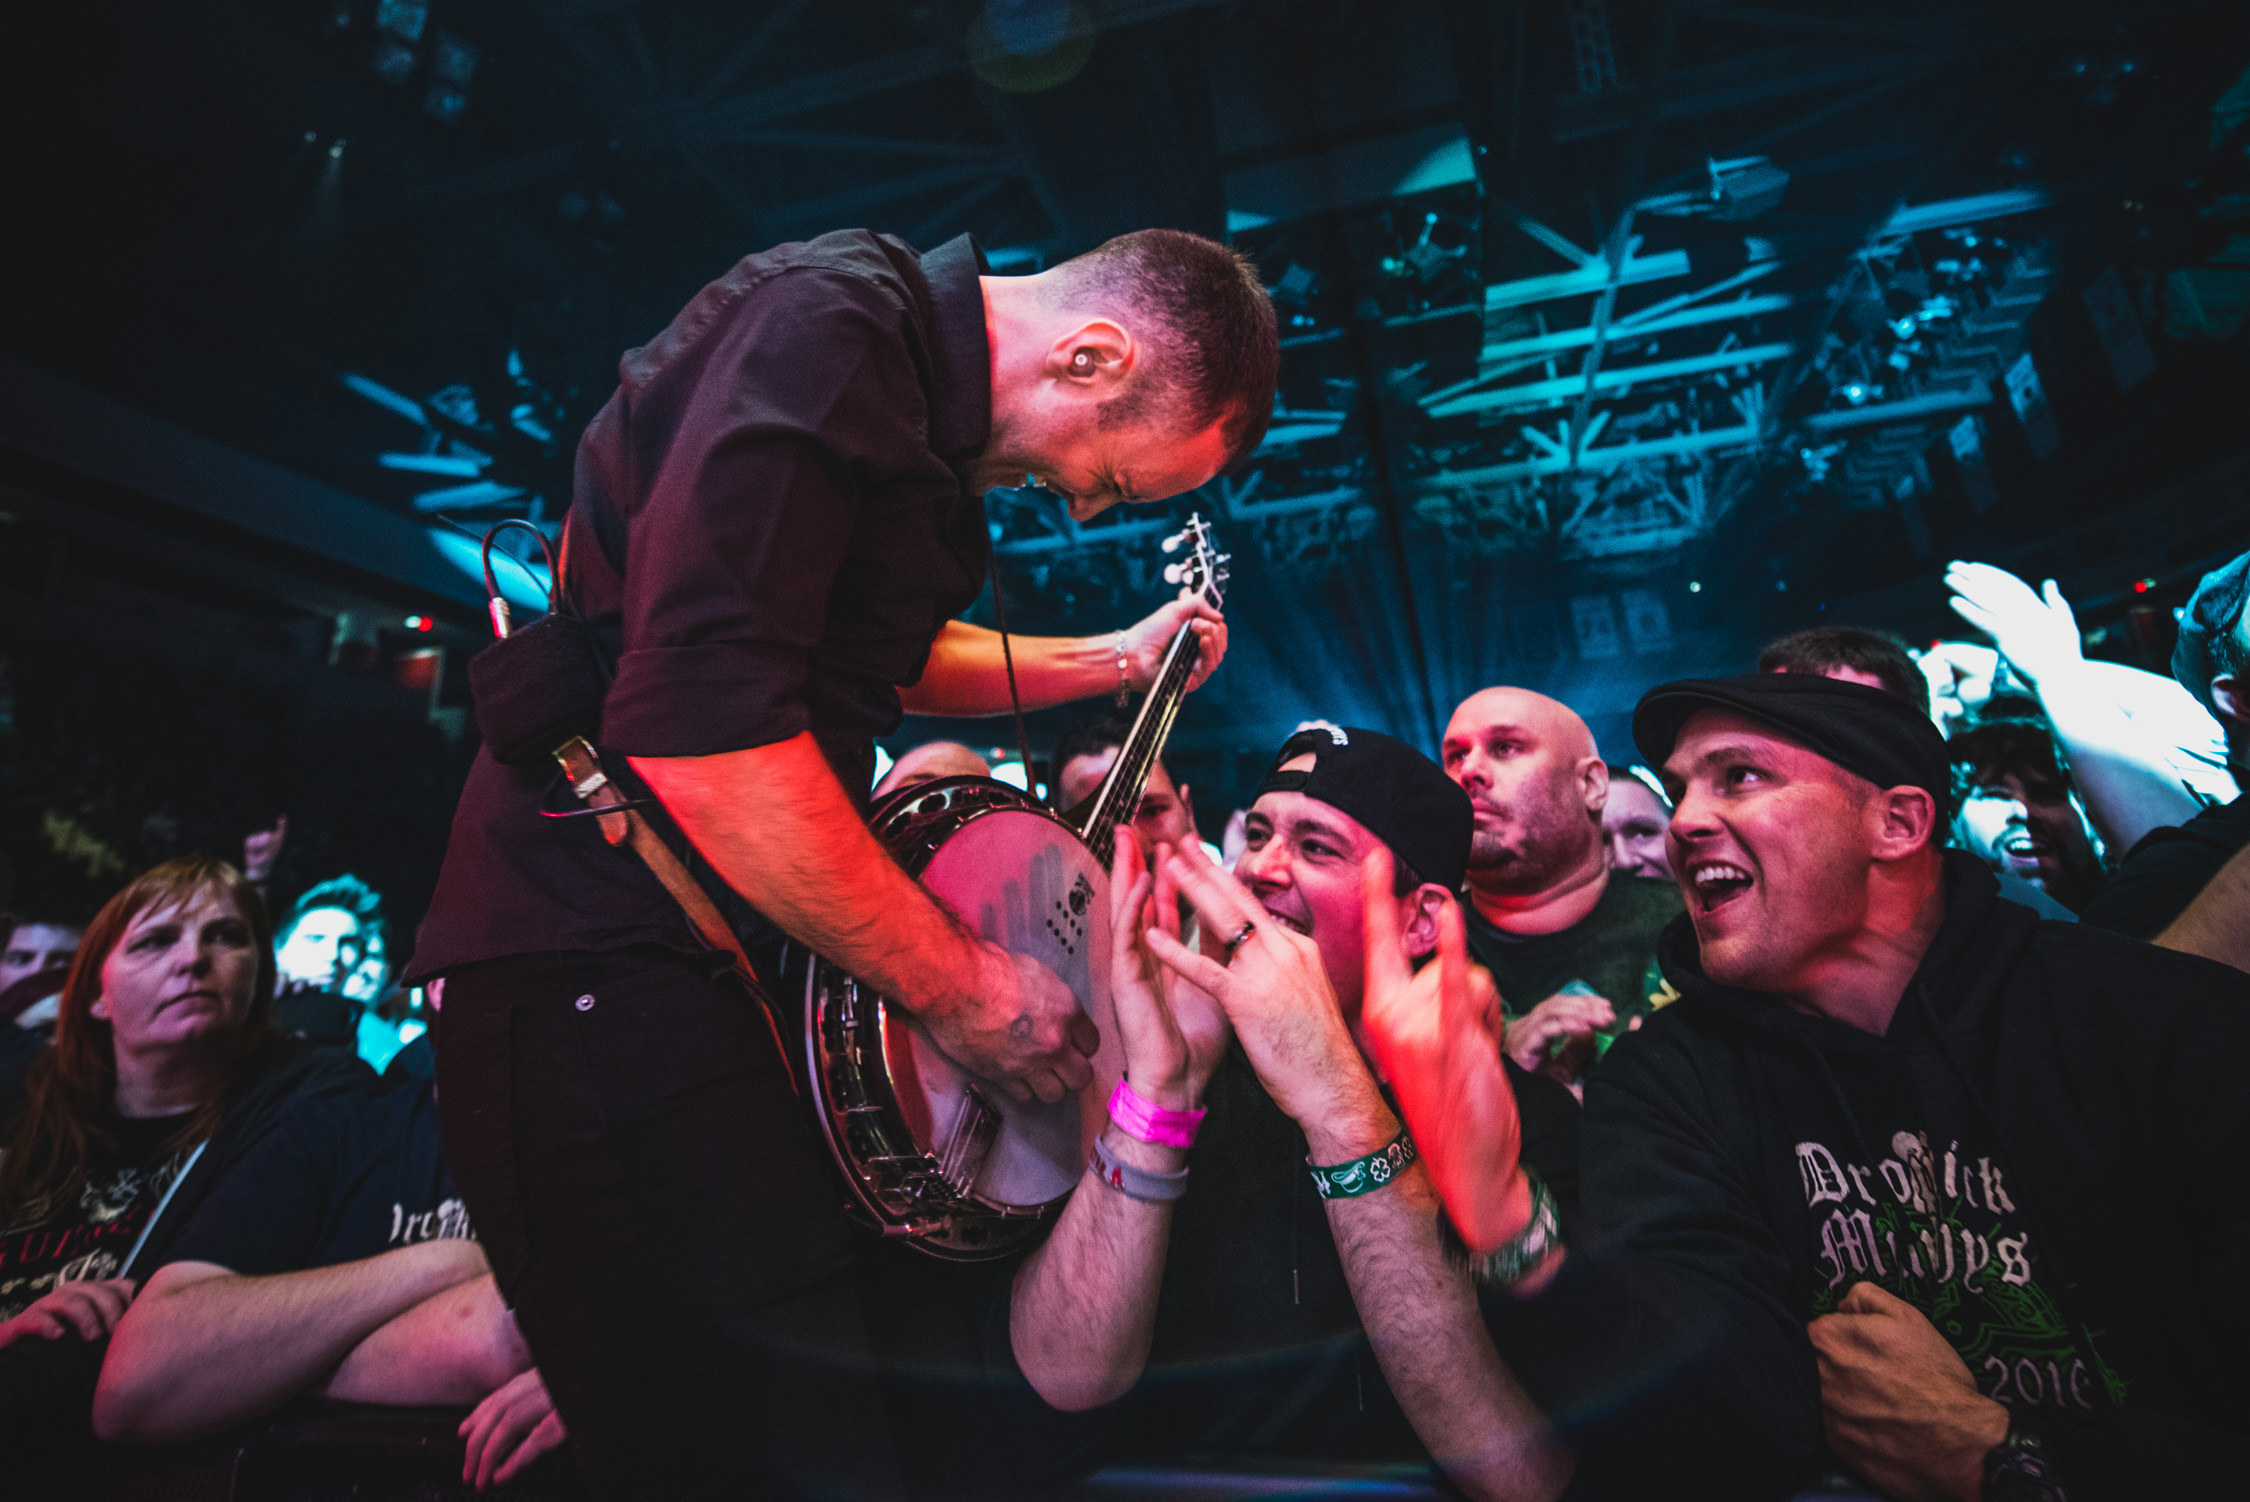 Dropkick Murphys Aegis Arena Boston Gregory Nolan 04.19.16 -84.jpg